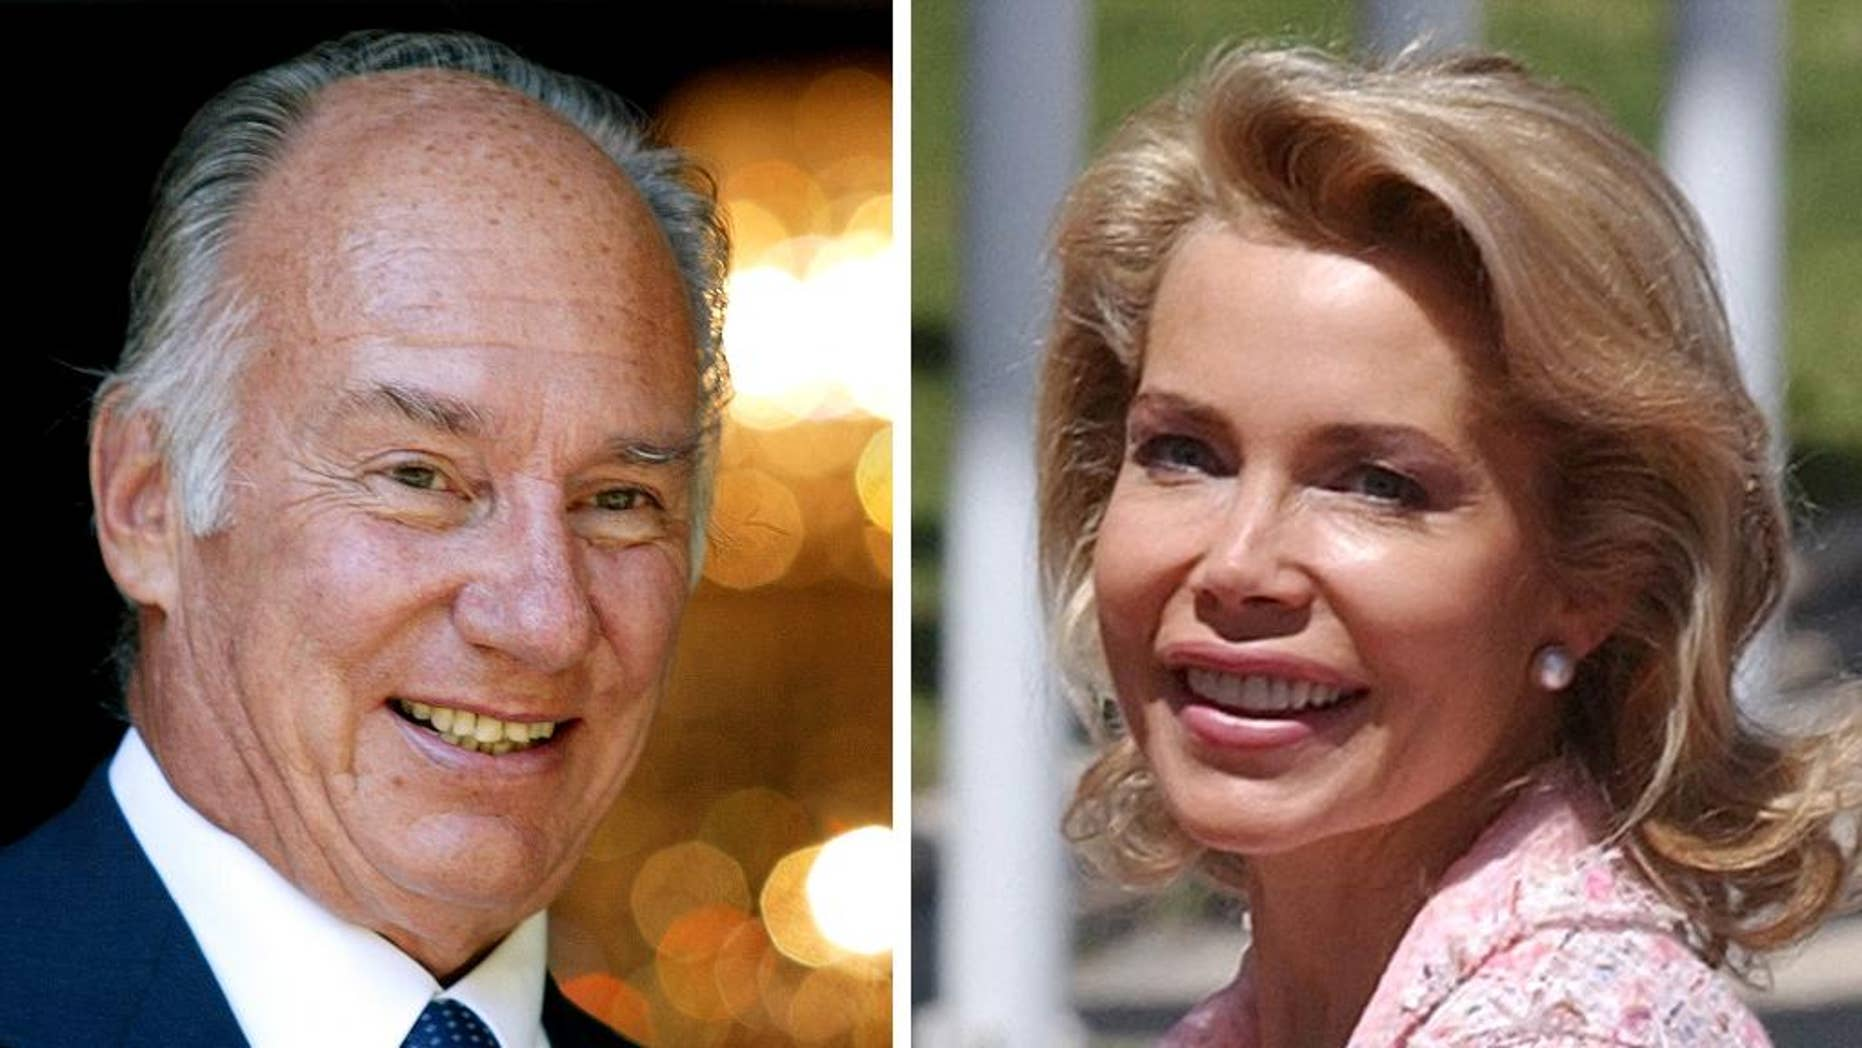 """FILE - In this photo combo are seen the Aga Khan, imam of the Ismaili Muslim community, on Sept. 6, 2004 in Berlin and his then wife Begum Inaara Aga Khan on May, 20,2004 in Madrid. Lawyers for the Aga Khan and his ex-wife Princess Gabriele Renate Inaara Zu Leiningen released a statement Friday March 14, 2014 saying their marriage """"ends by consent"""" after the Paris Court of Appeals approved a divorce settlement. The lawyers would not provide any further detail, saying terms of the settlement are confidential. The two married in 1998, and started divorce proceedings several years later after having a son. (AP Photo/Jan Bauer, Paul White, File)"""